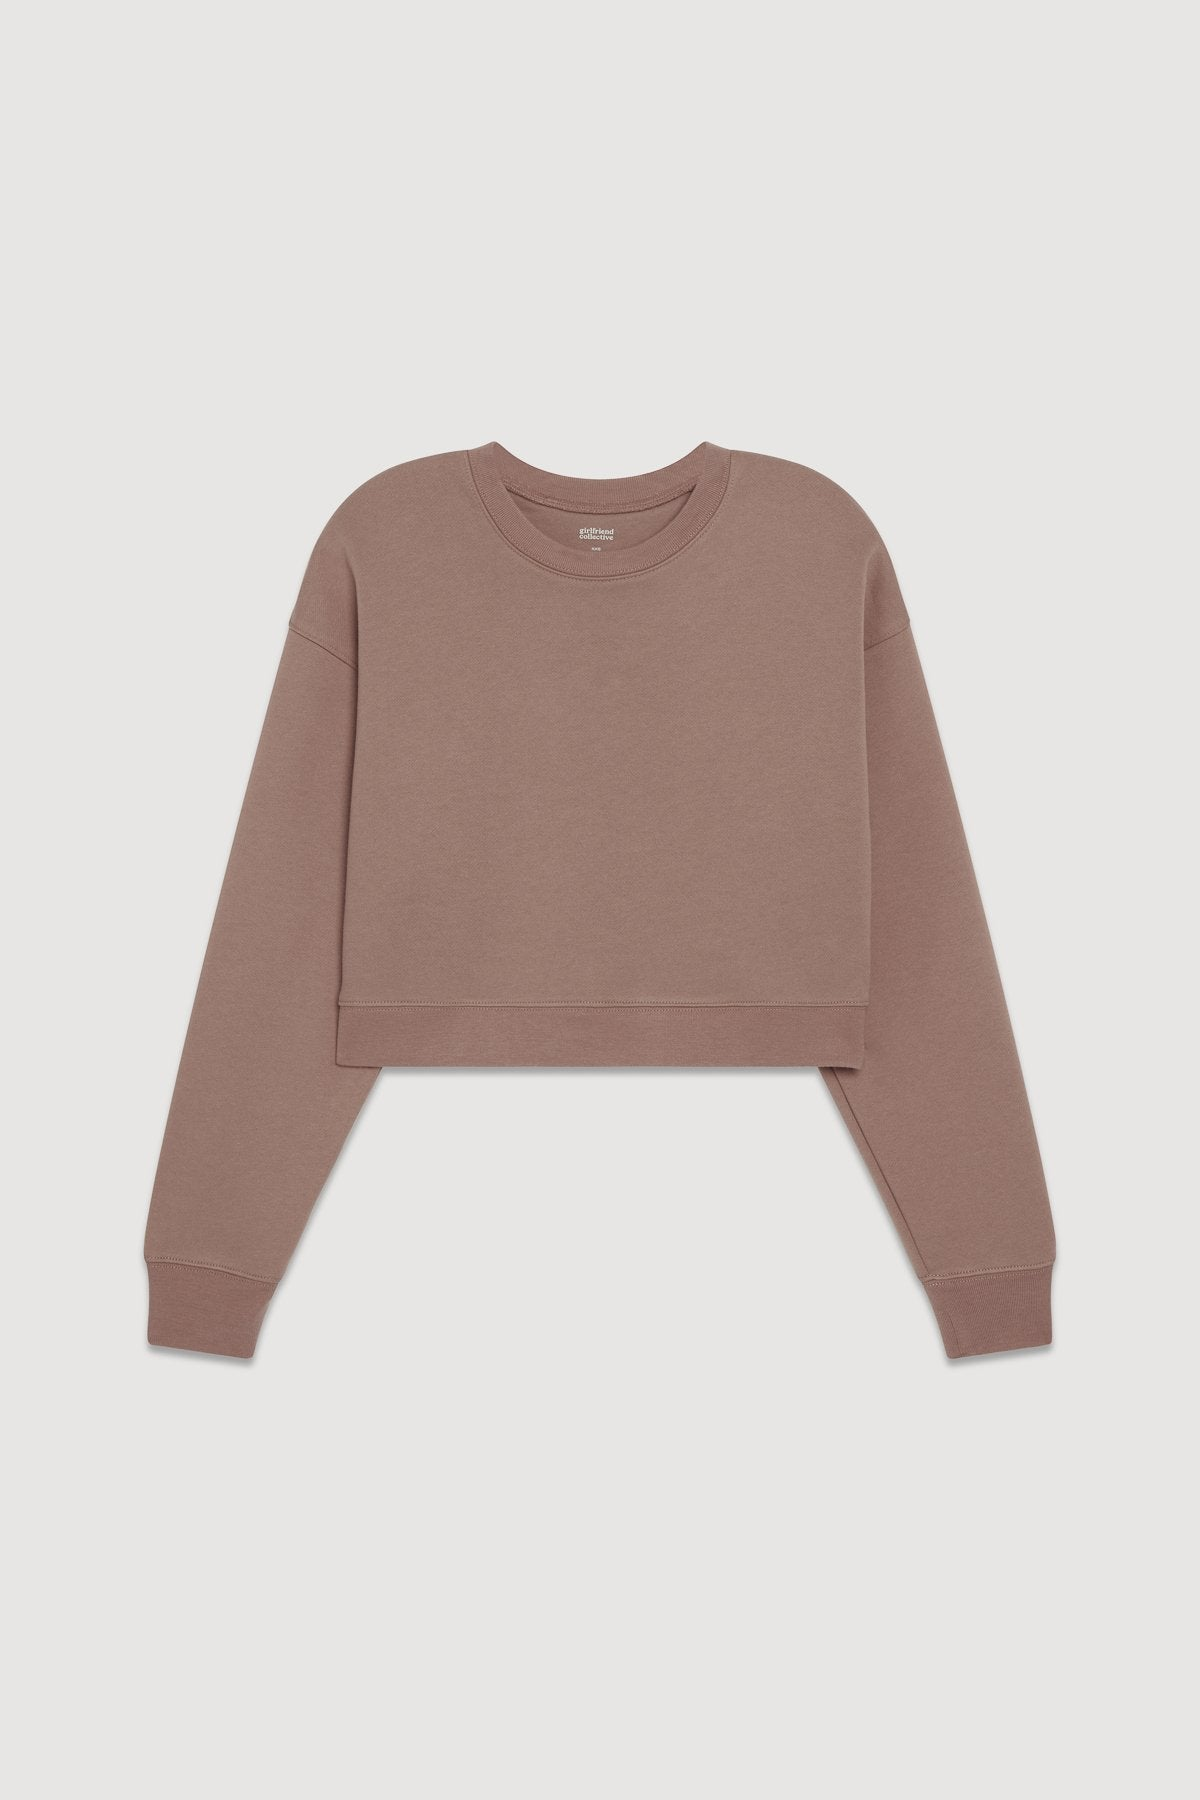 Taro Cropped Sweatshirt